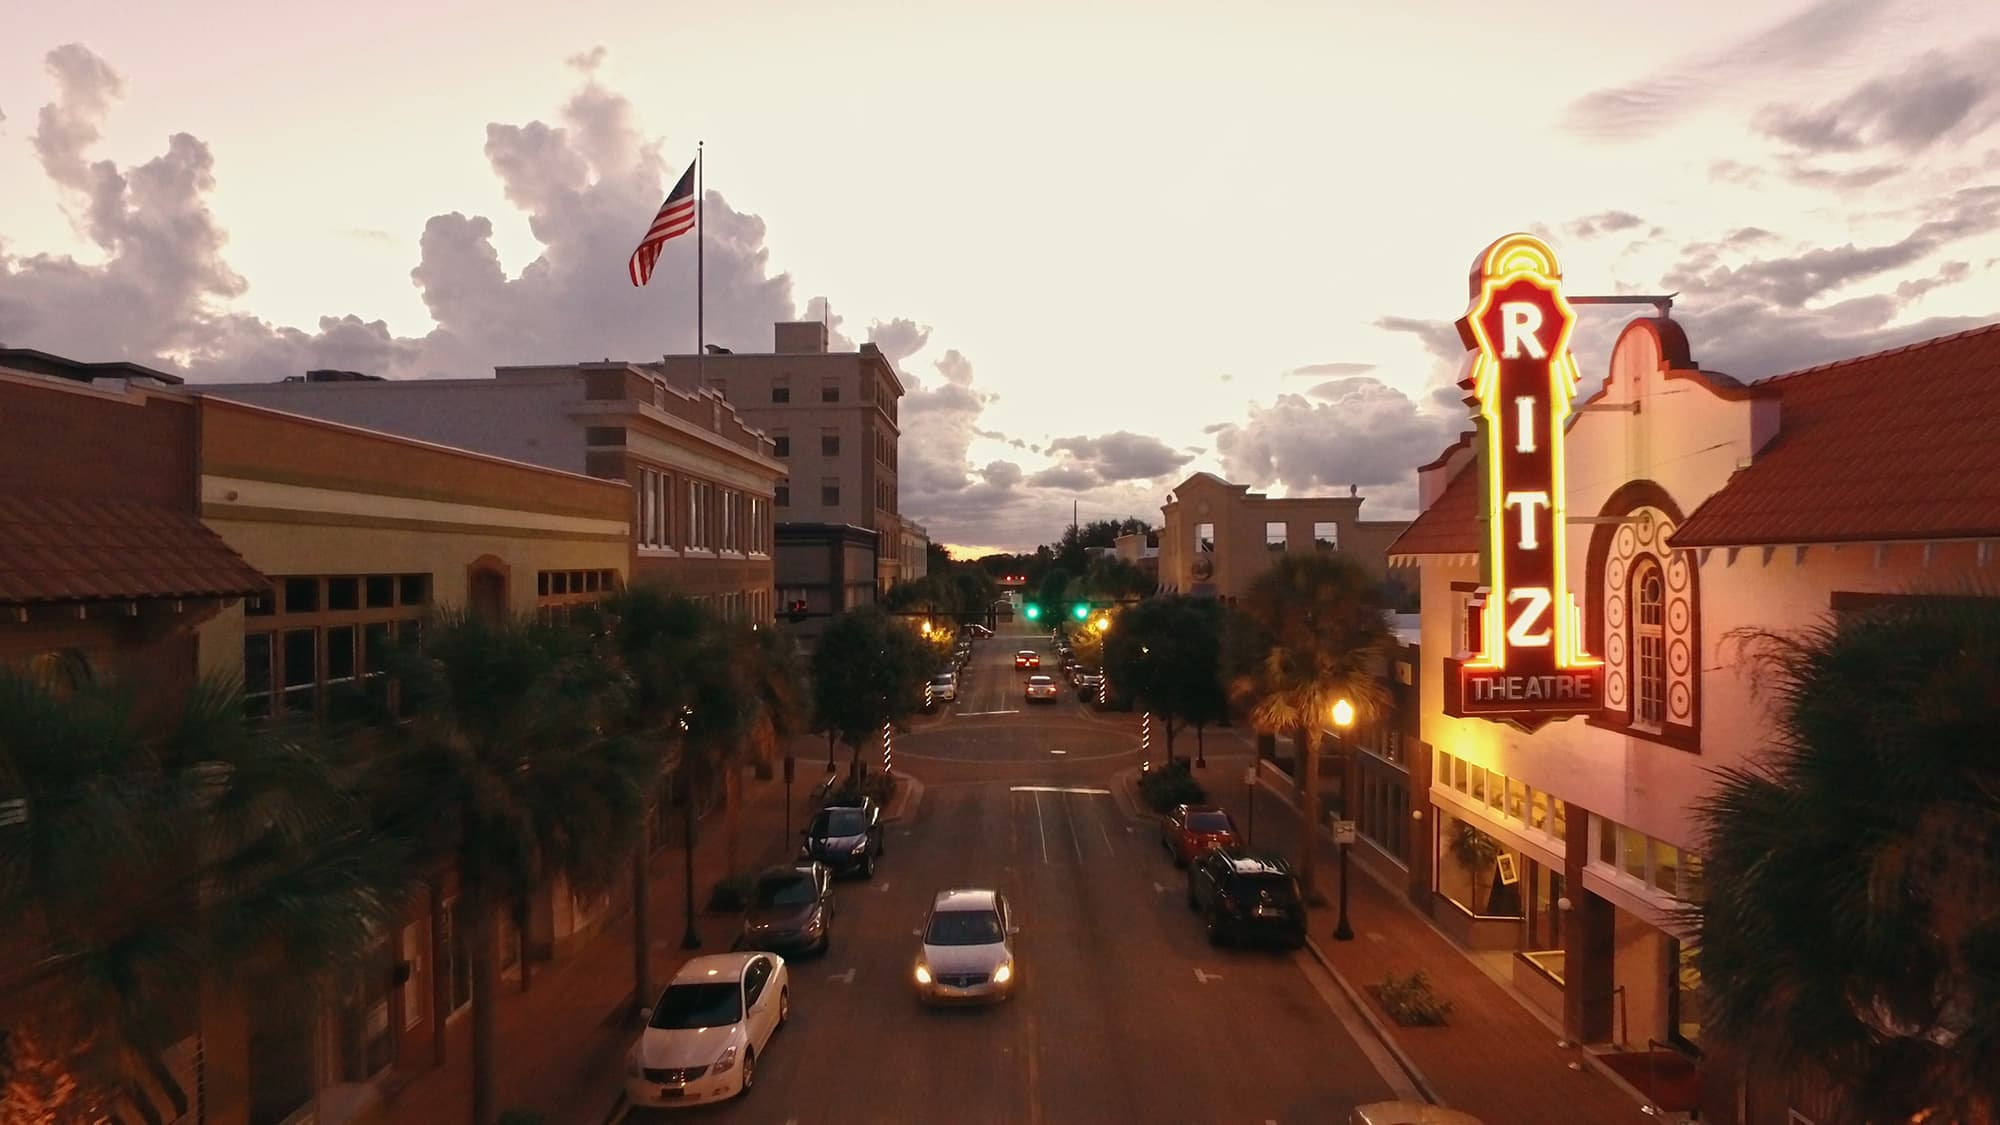 Central Avenue in downtown Winter Haven, FL at dusk